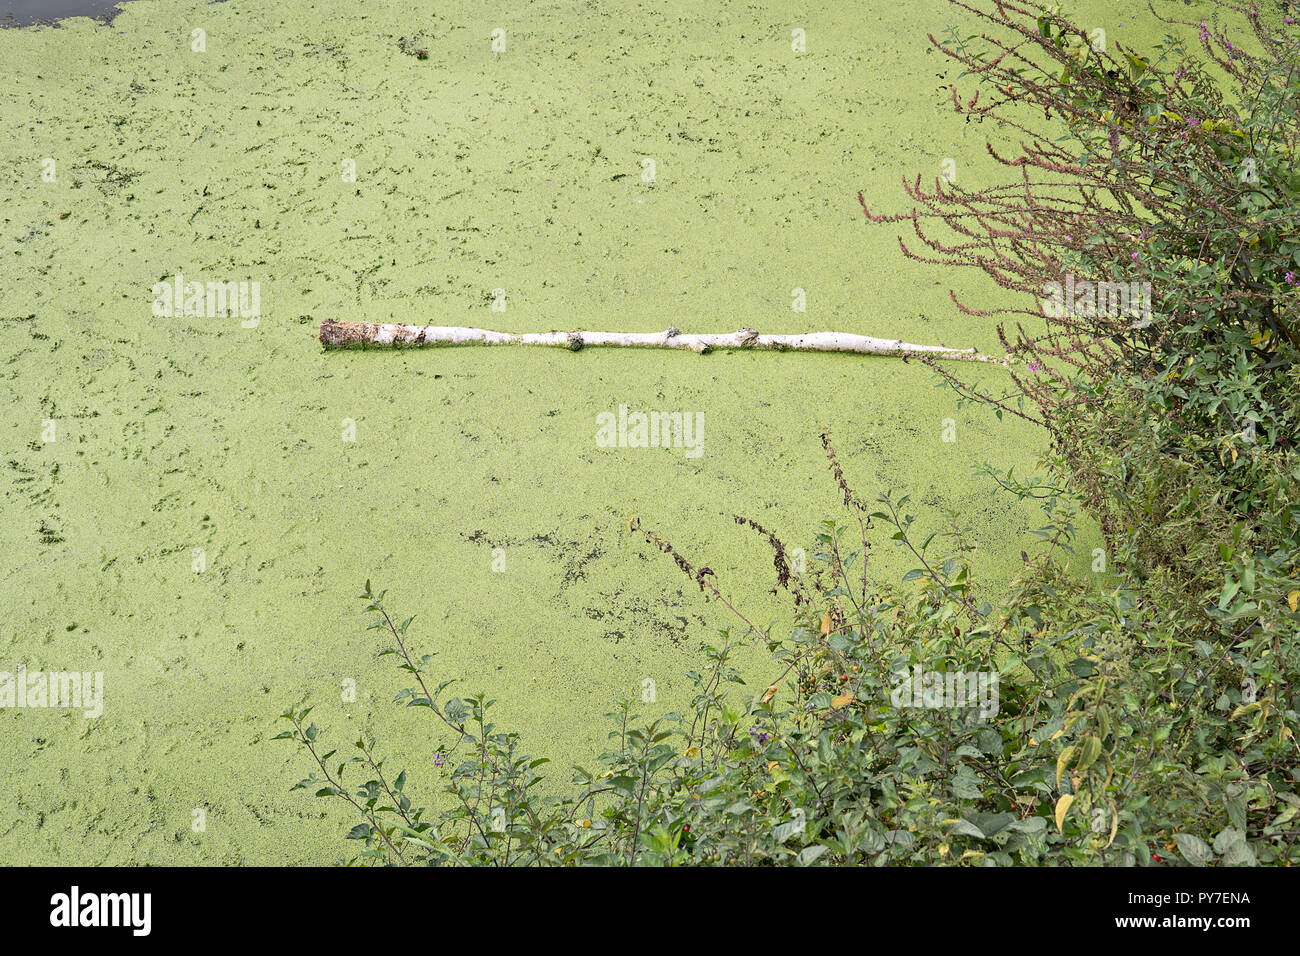 Stagnant water with algae bloom. Polluted river water. Water pollution concept - Stock Image